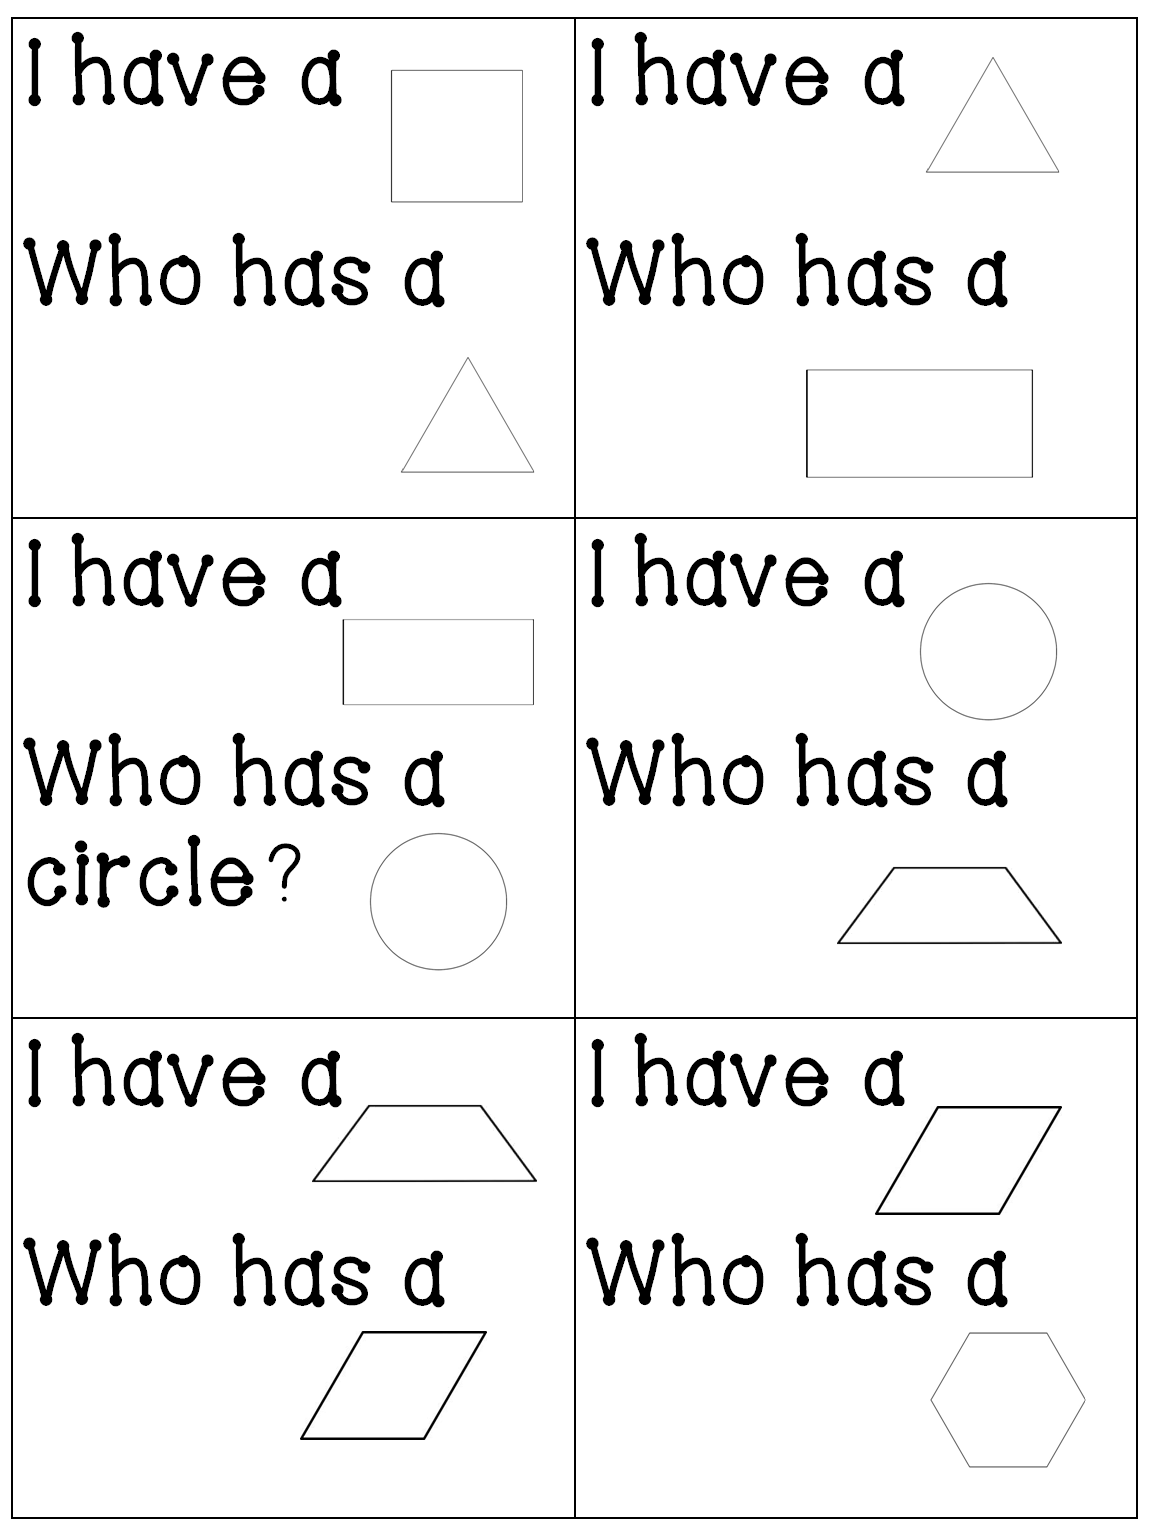 I Have Who Has Shape Game For Both Plane Solid Figures Lots Of Other Great Geometry Activities Too Elementary Math Teaching Math Preschool Math [ 1530 x 1149 Pixel ]